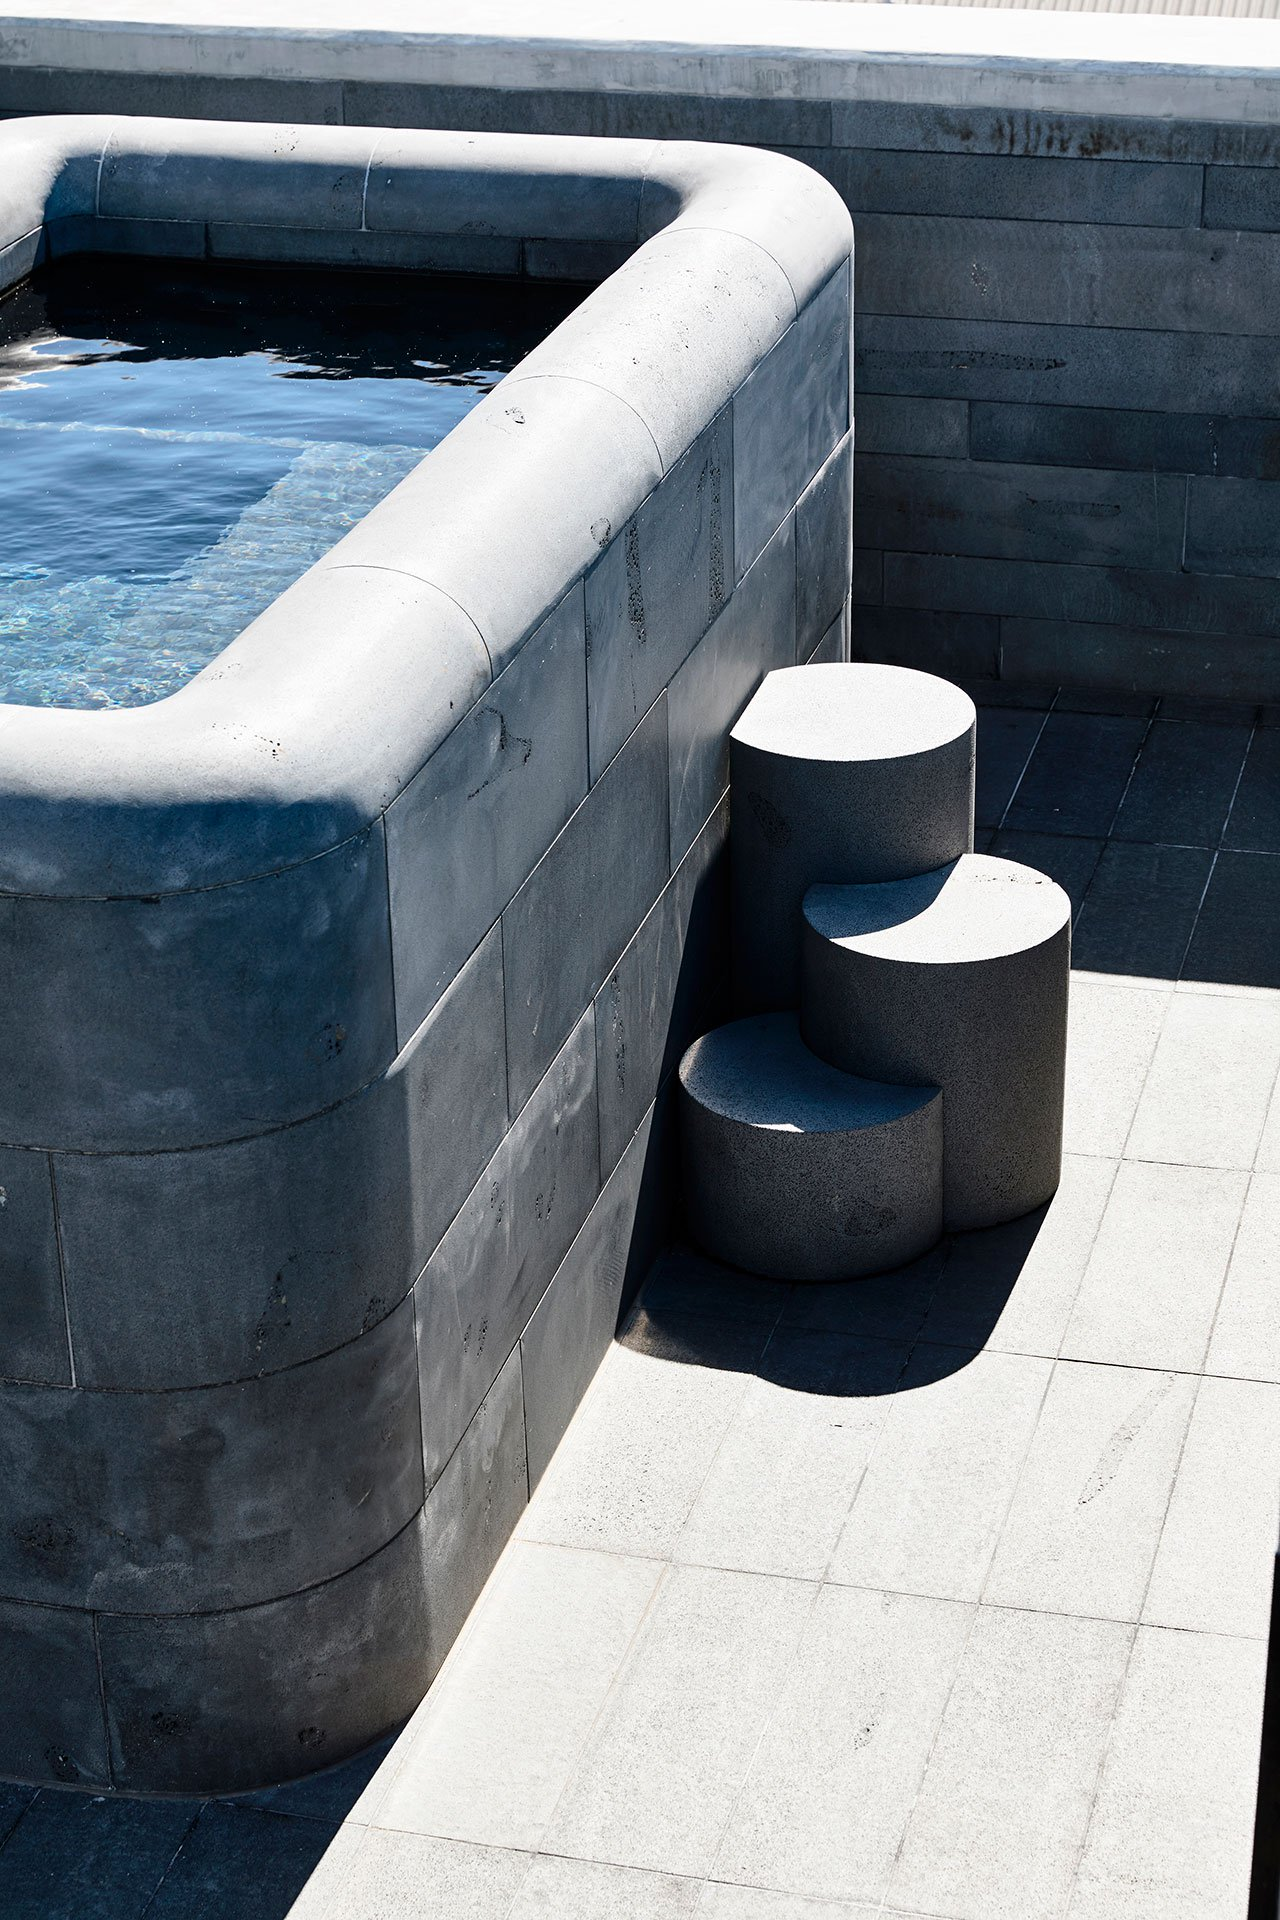 There's also an outdoor stone clad bathtub